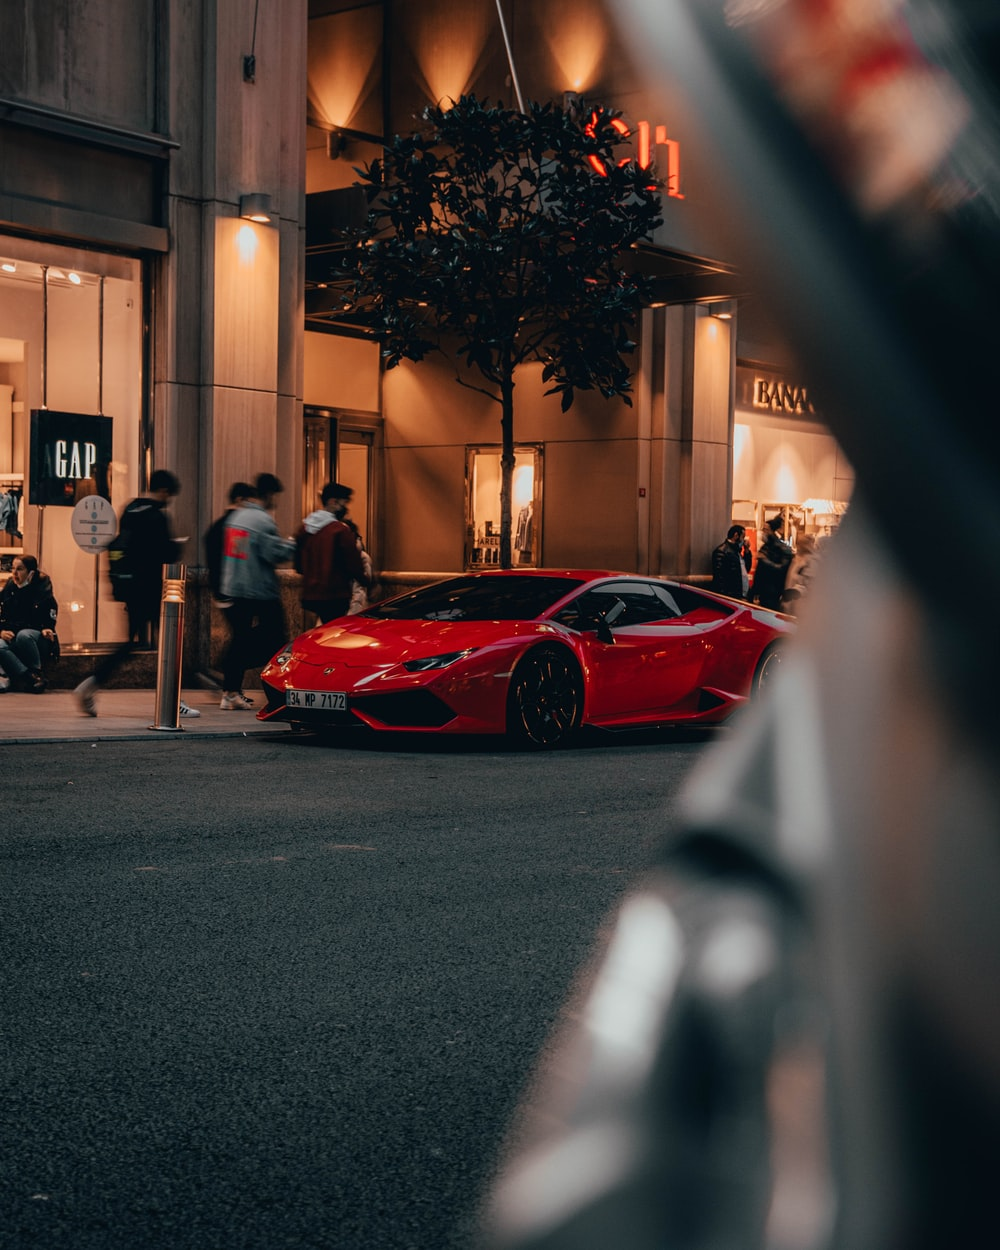 red car parked on sidewalk during night time